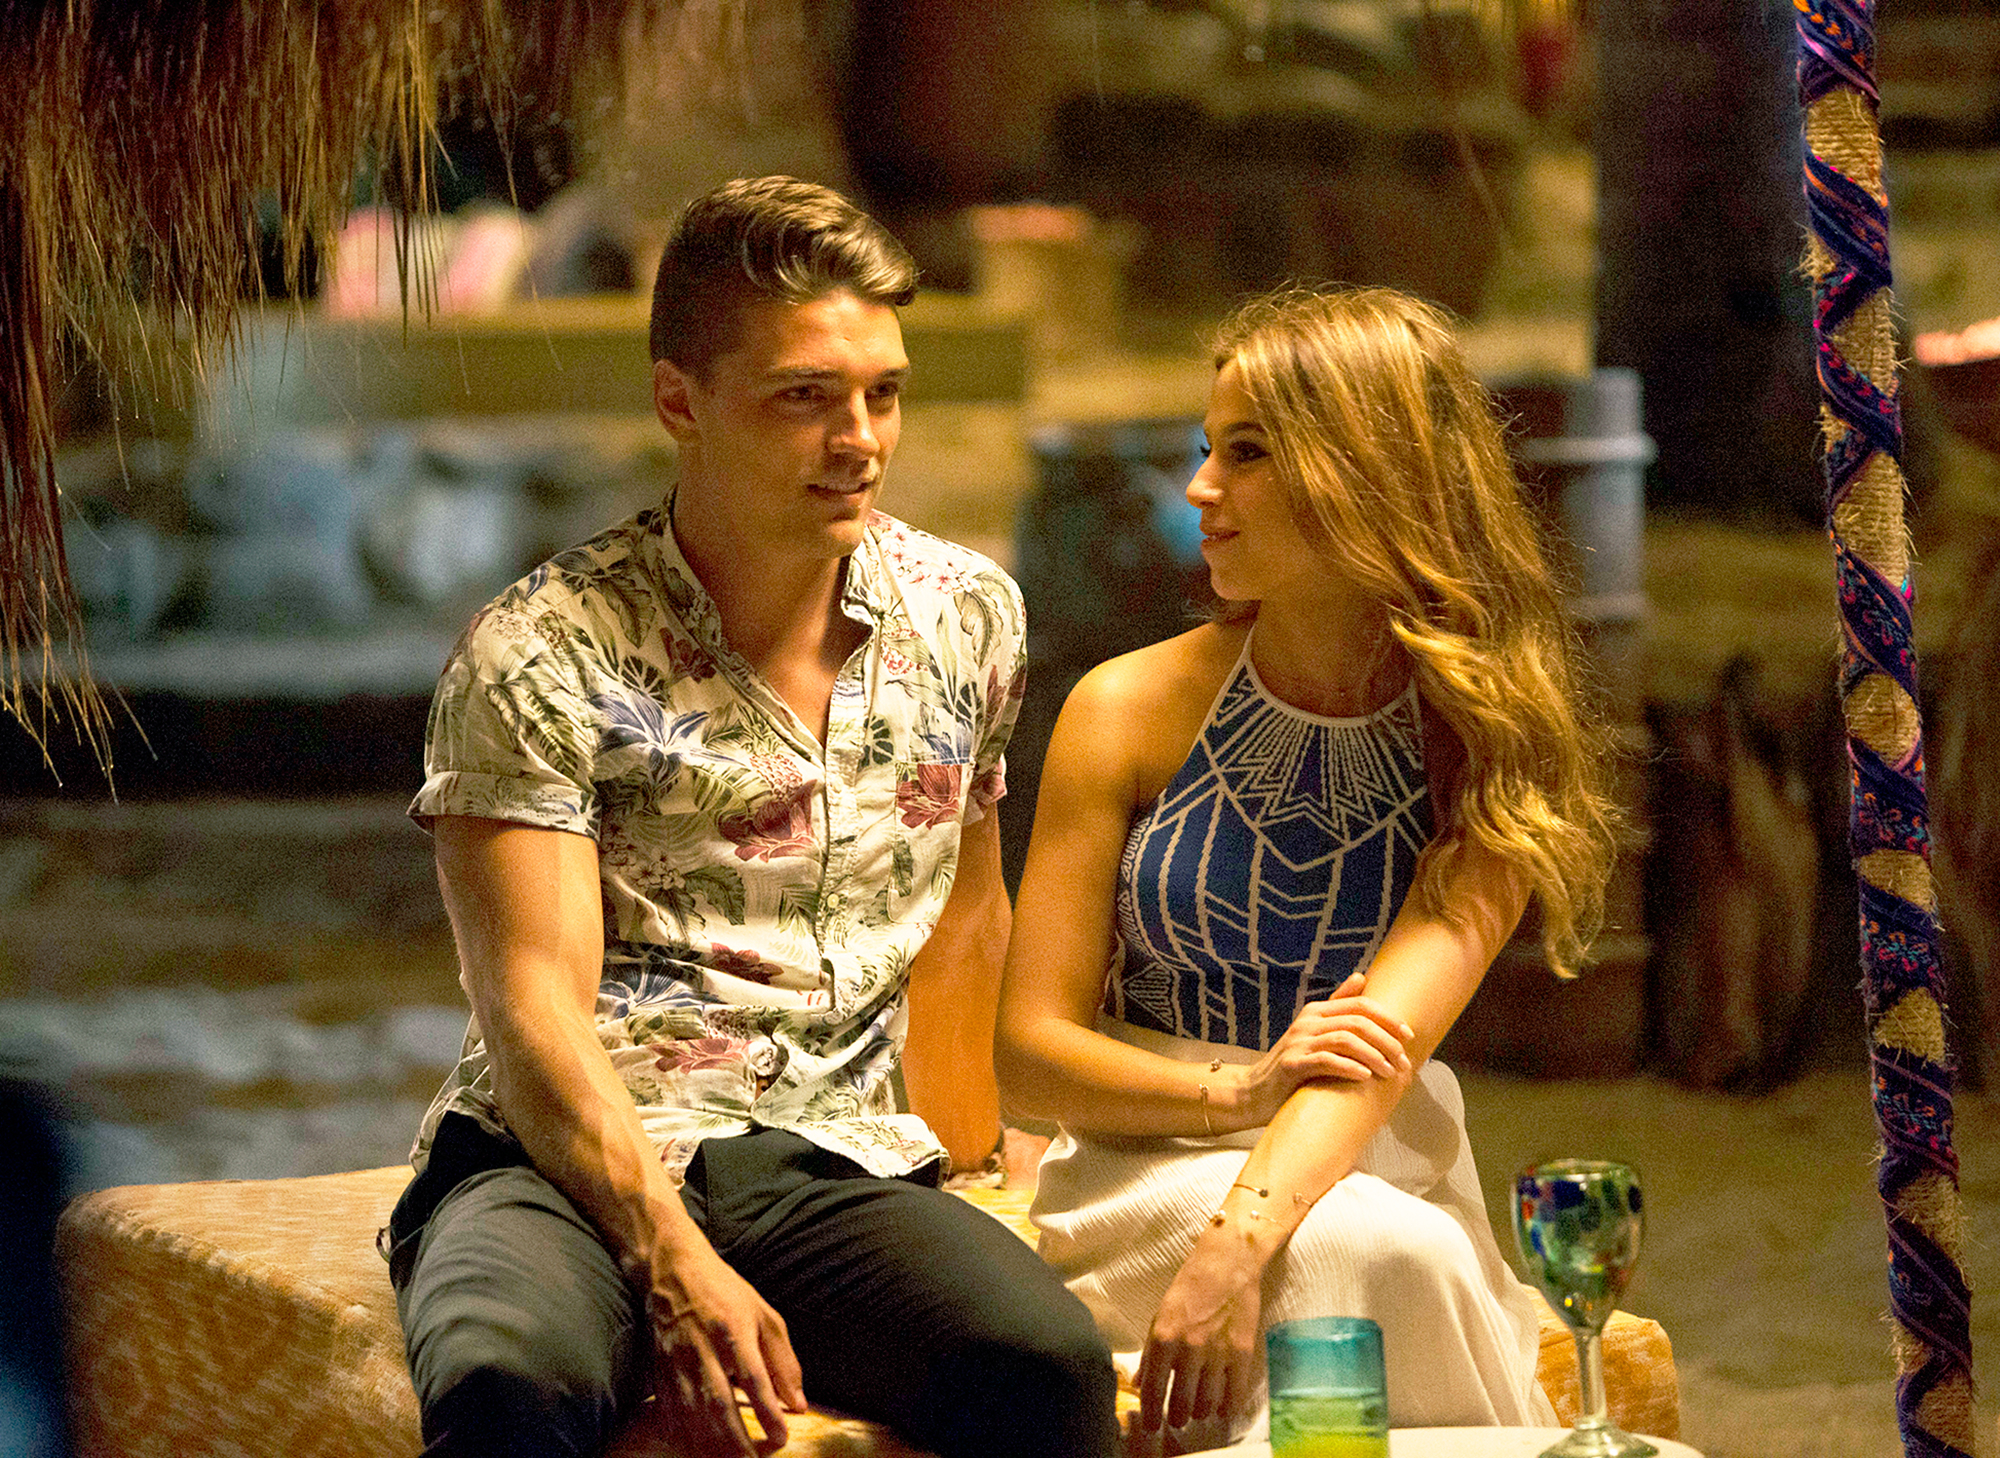 Dean Unglert and Kristina Schulman Bachelor in Paradise